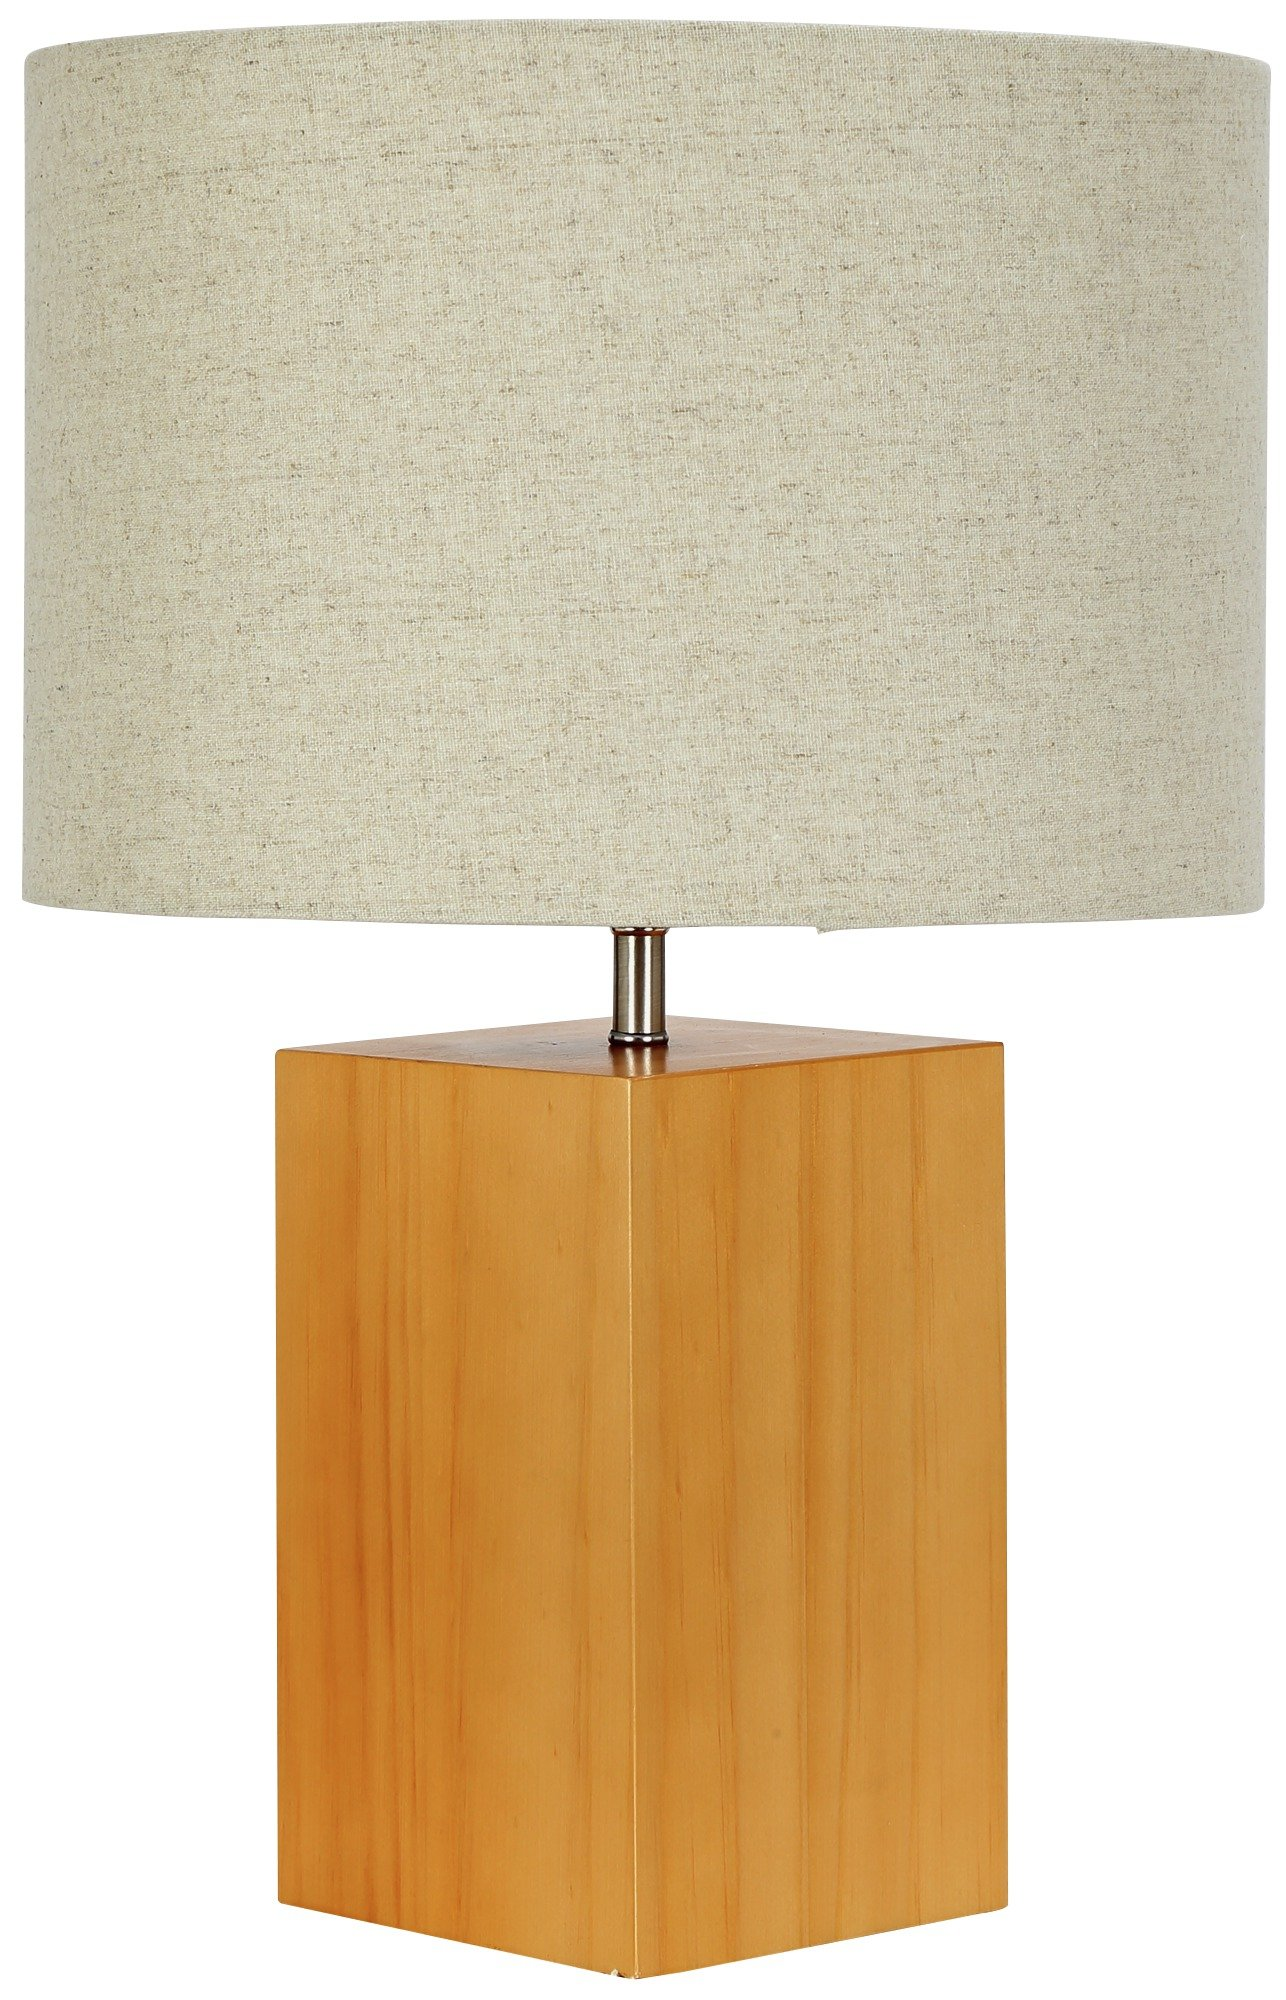 Image of Collection Lonan Table Lamp - Walnut Effect